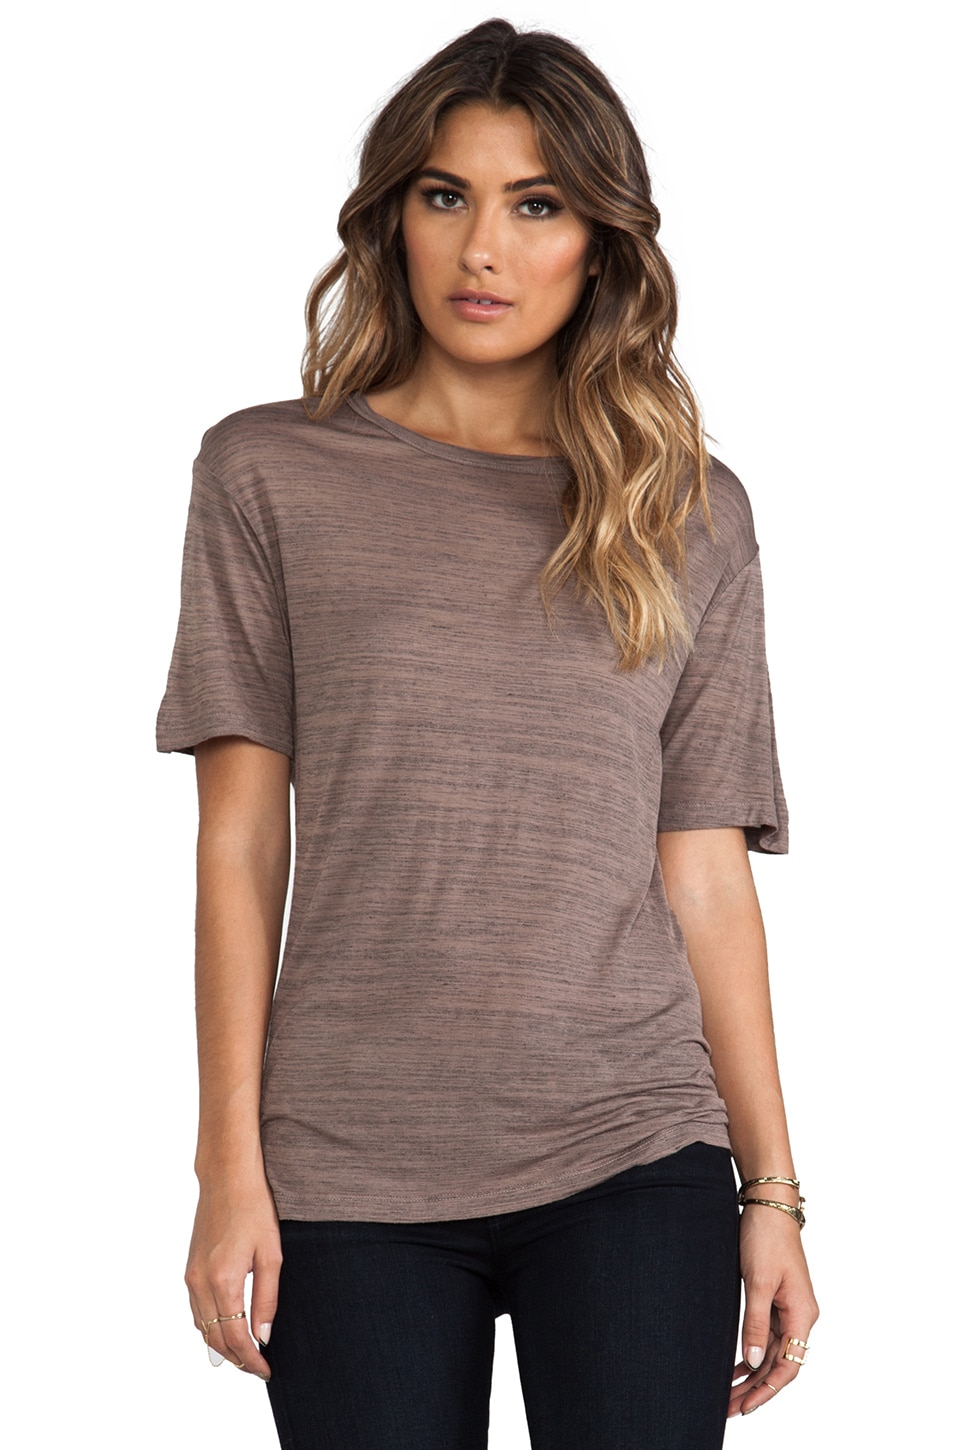 Kain Space Dyed Aldon Tee in Towny Brown